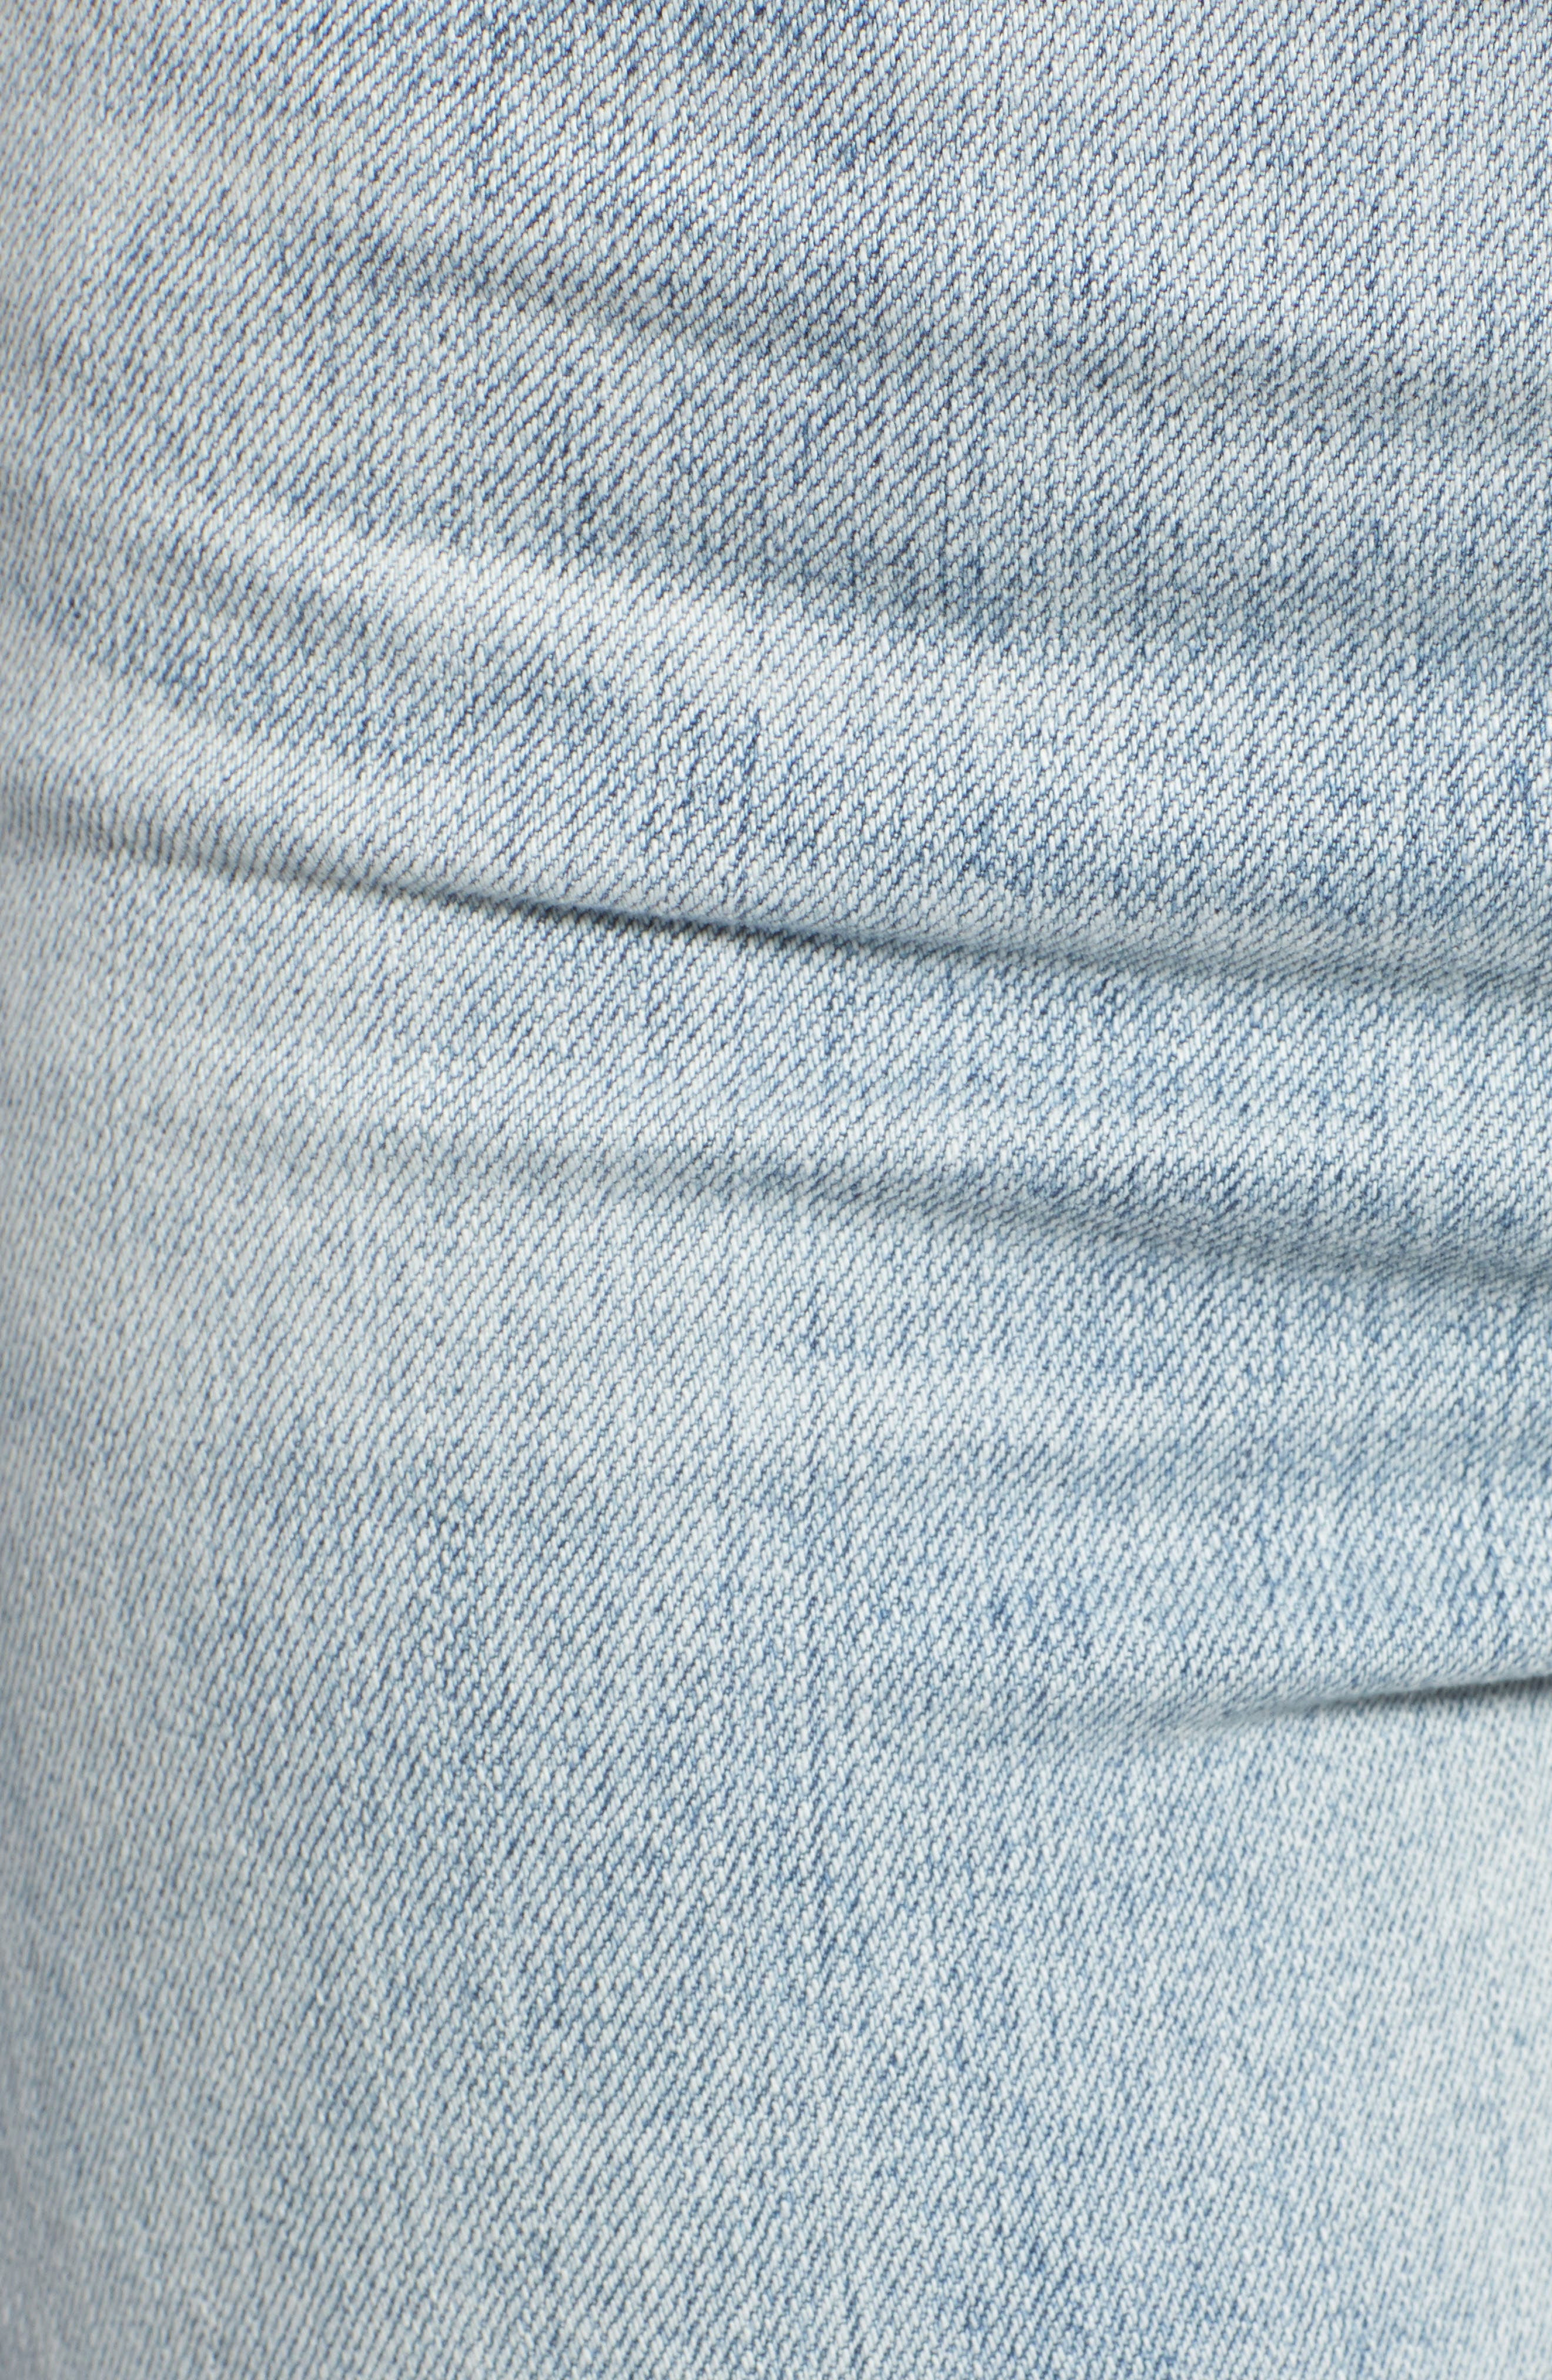 The Isabelle High Waist Crop Straight Leg Jeans,                             Alternate thumbnail 6, color,                             21 Years-Reflection